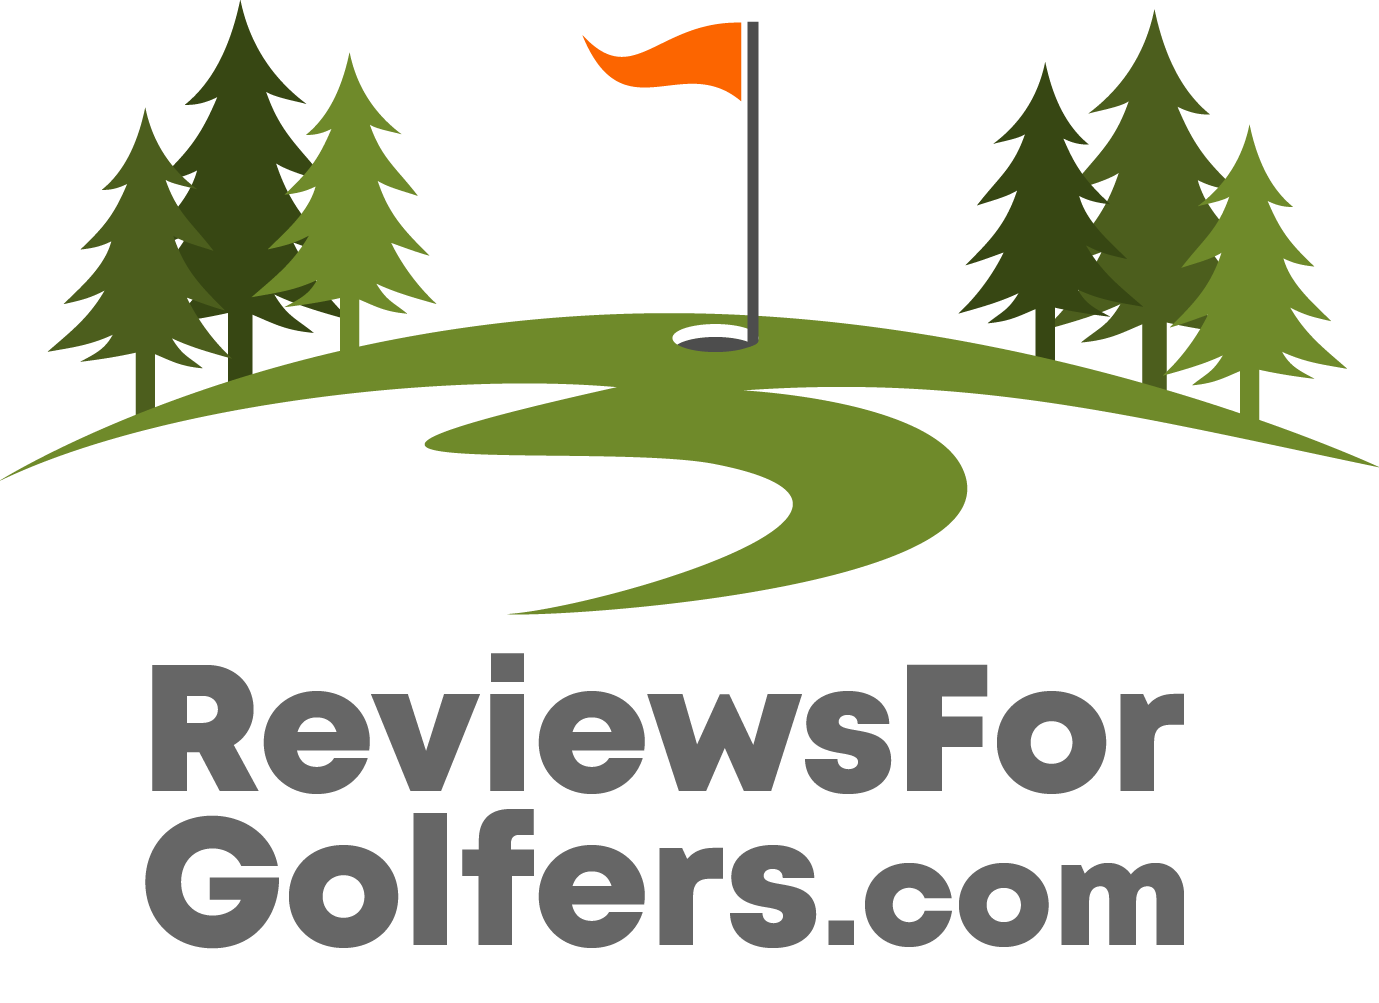 Reviews For Golfers